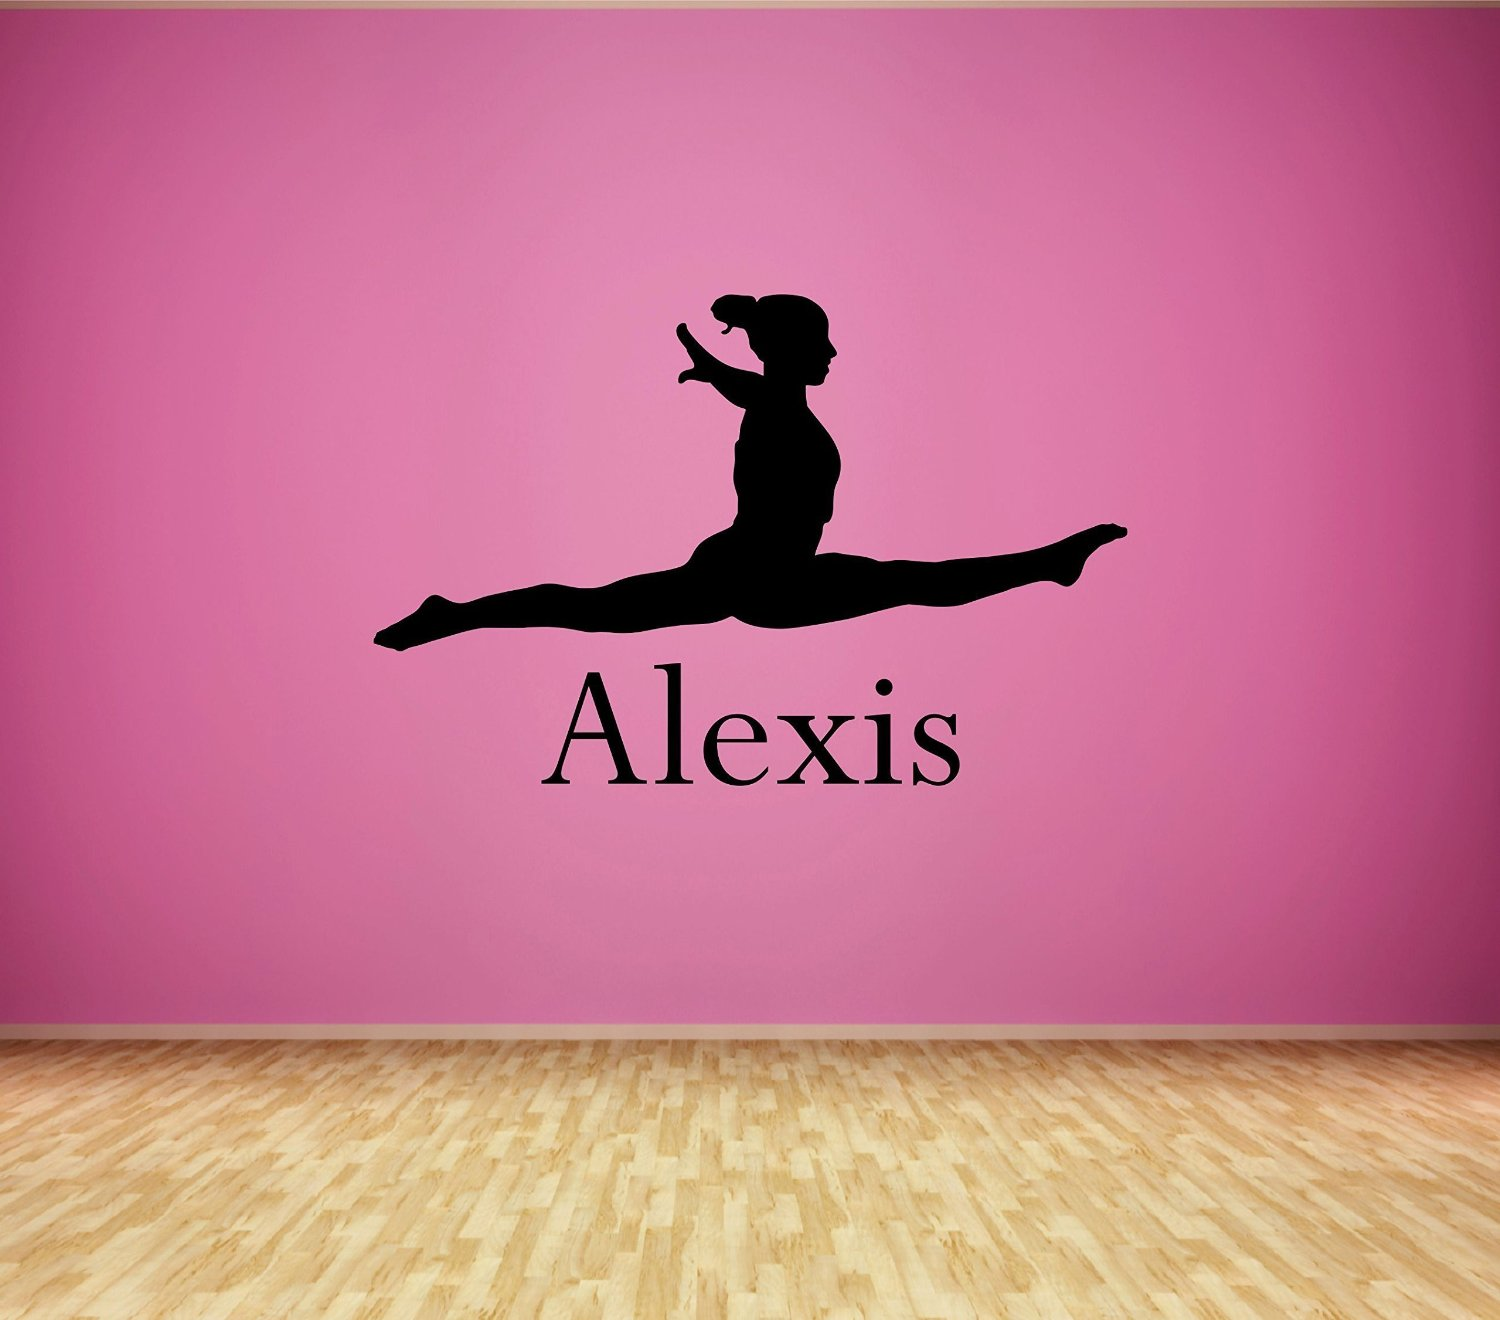 Custom Name Dance Wall Decal - Boys Girls Personalized Name Dancer Wall Sticker - Custom Name Sign - Custom Name Stencil Monogram - Boys Girls Room Wall Decor